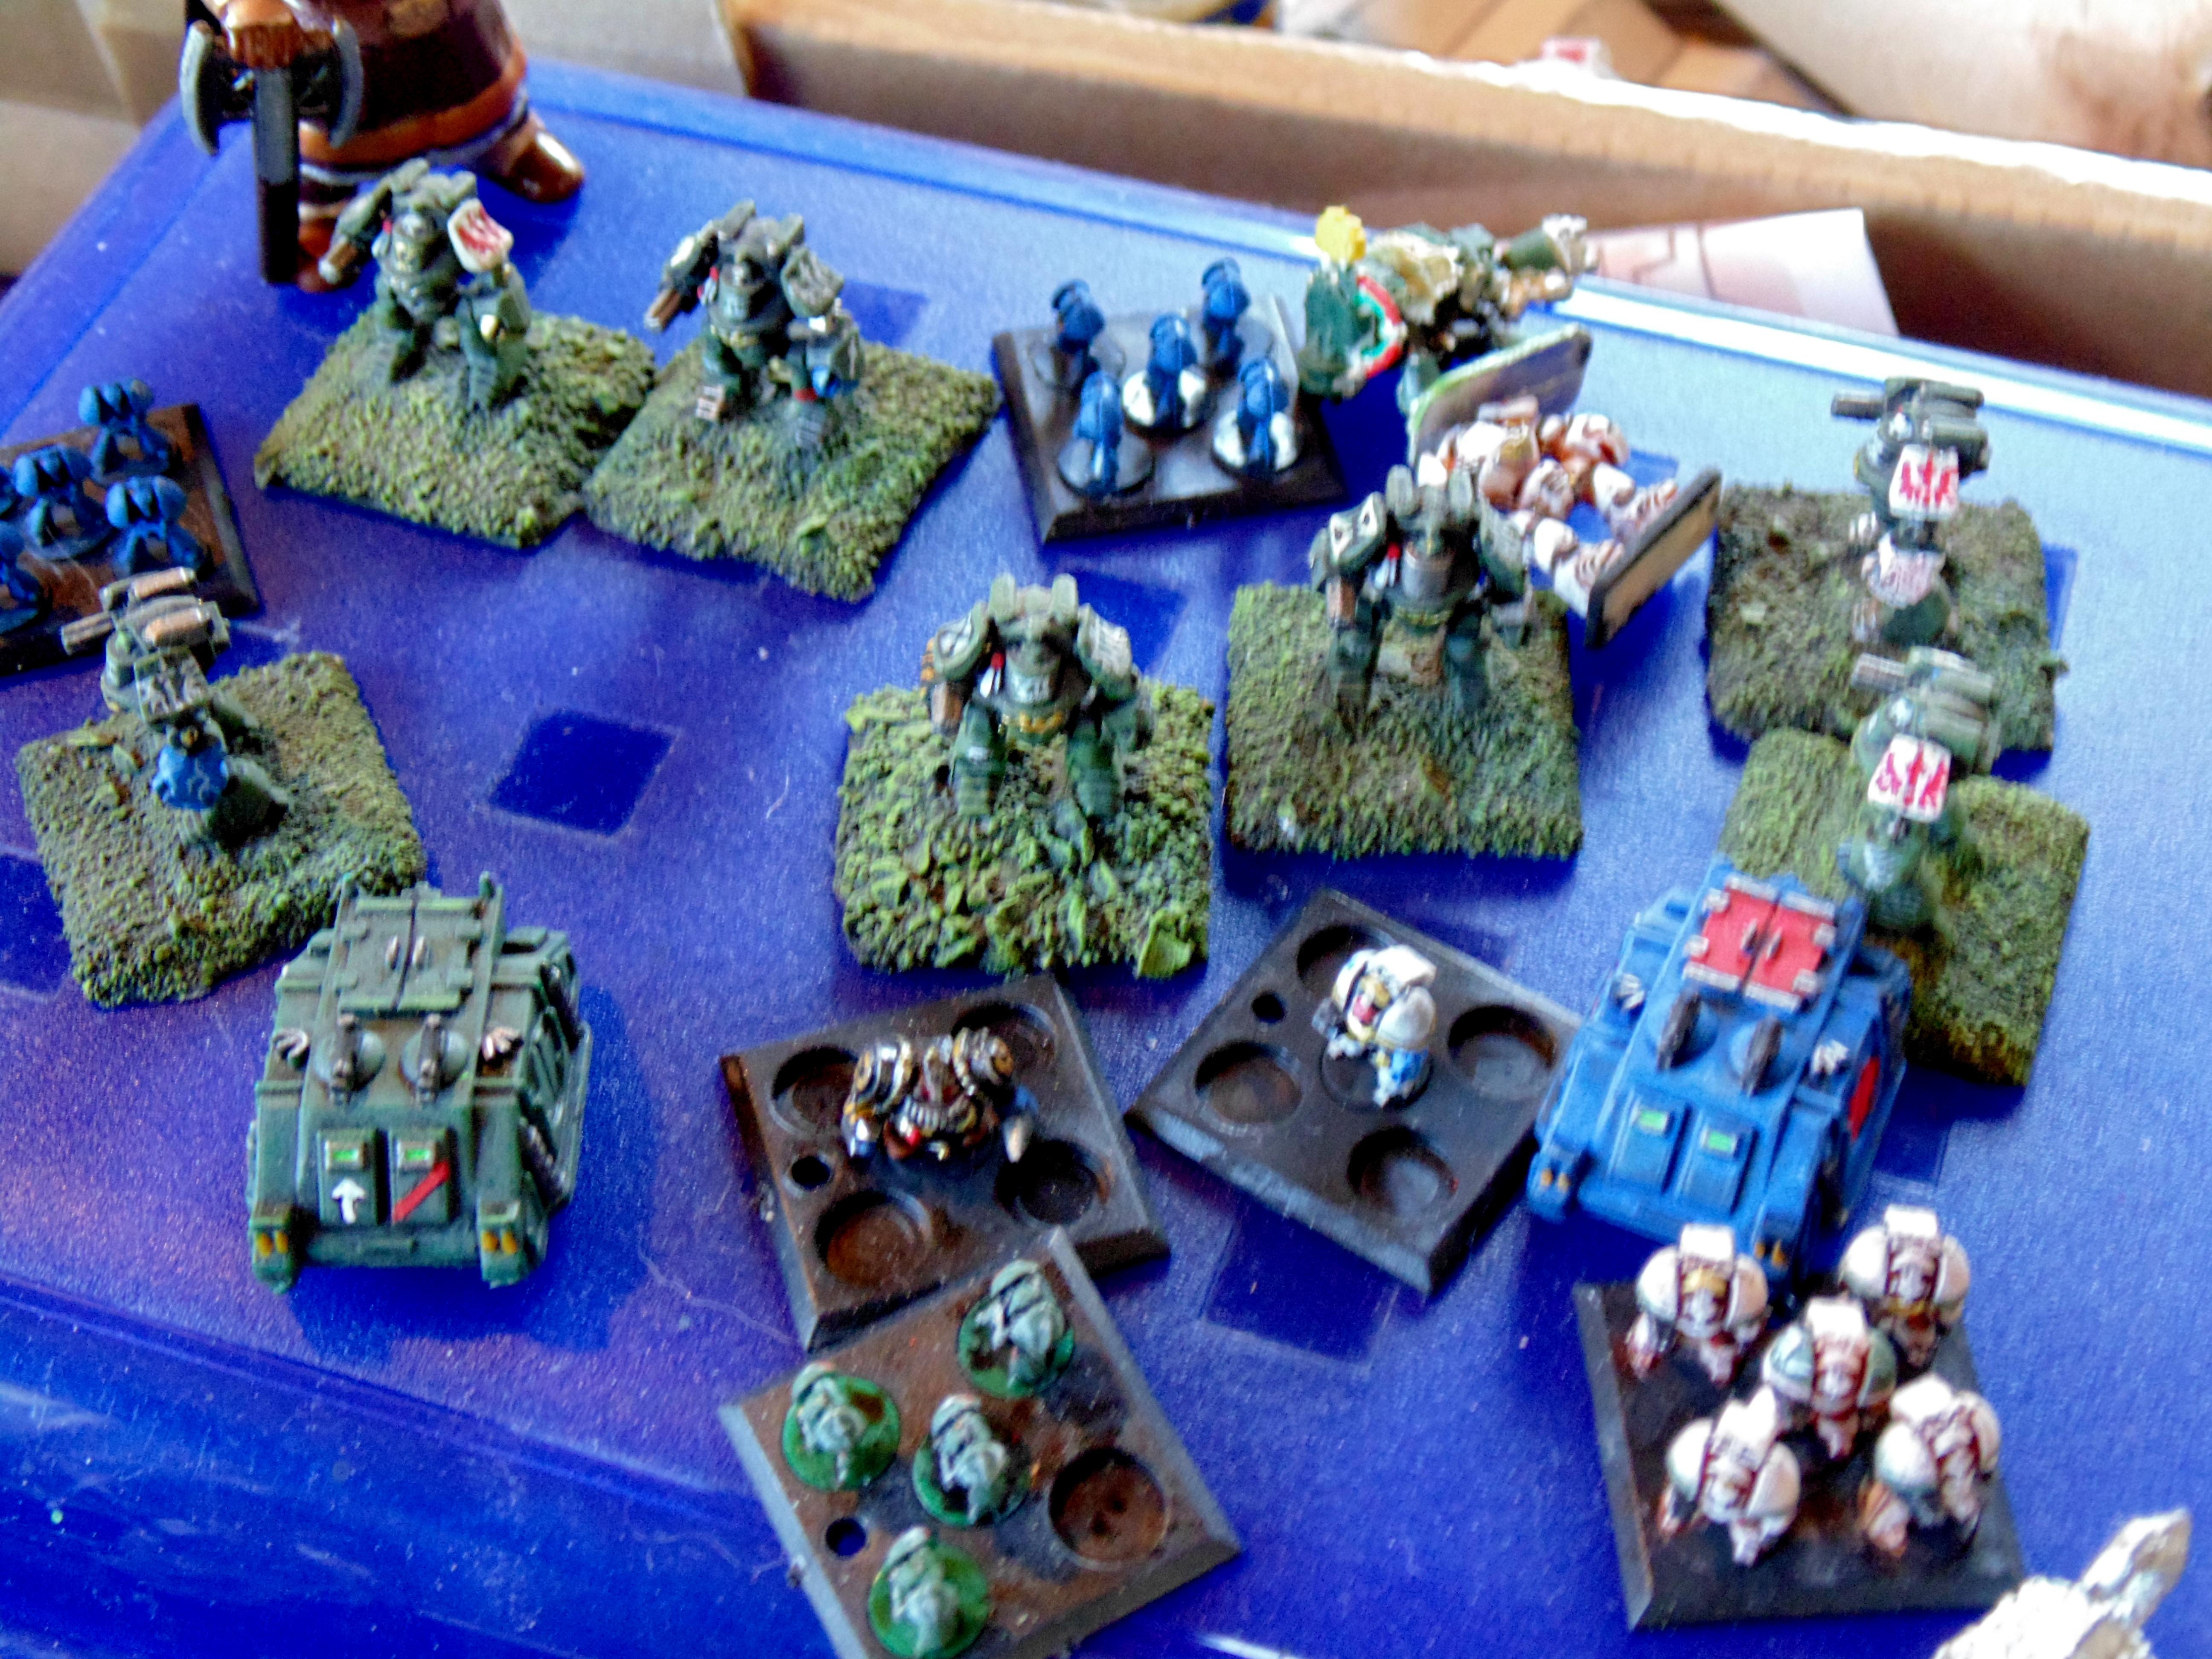 6mm, Astartes, Epic, Space Marines, Warhammer 40,000, Warhammer